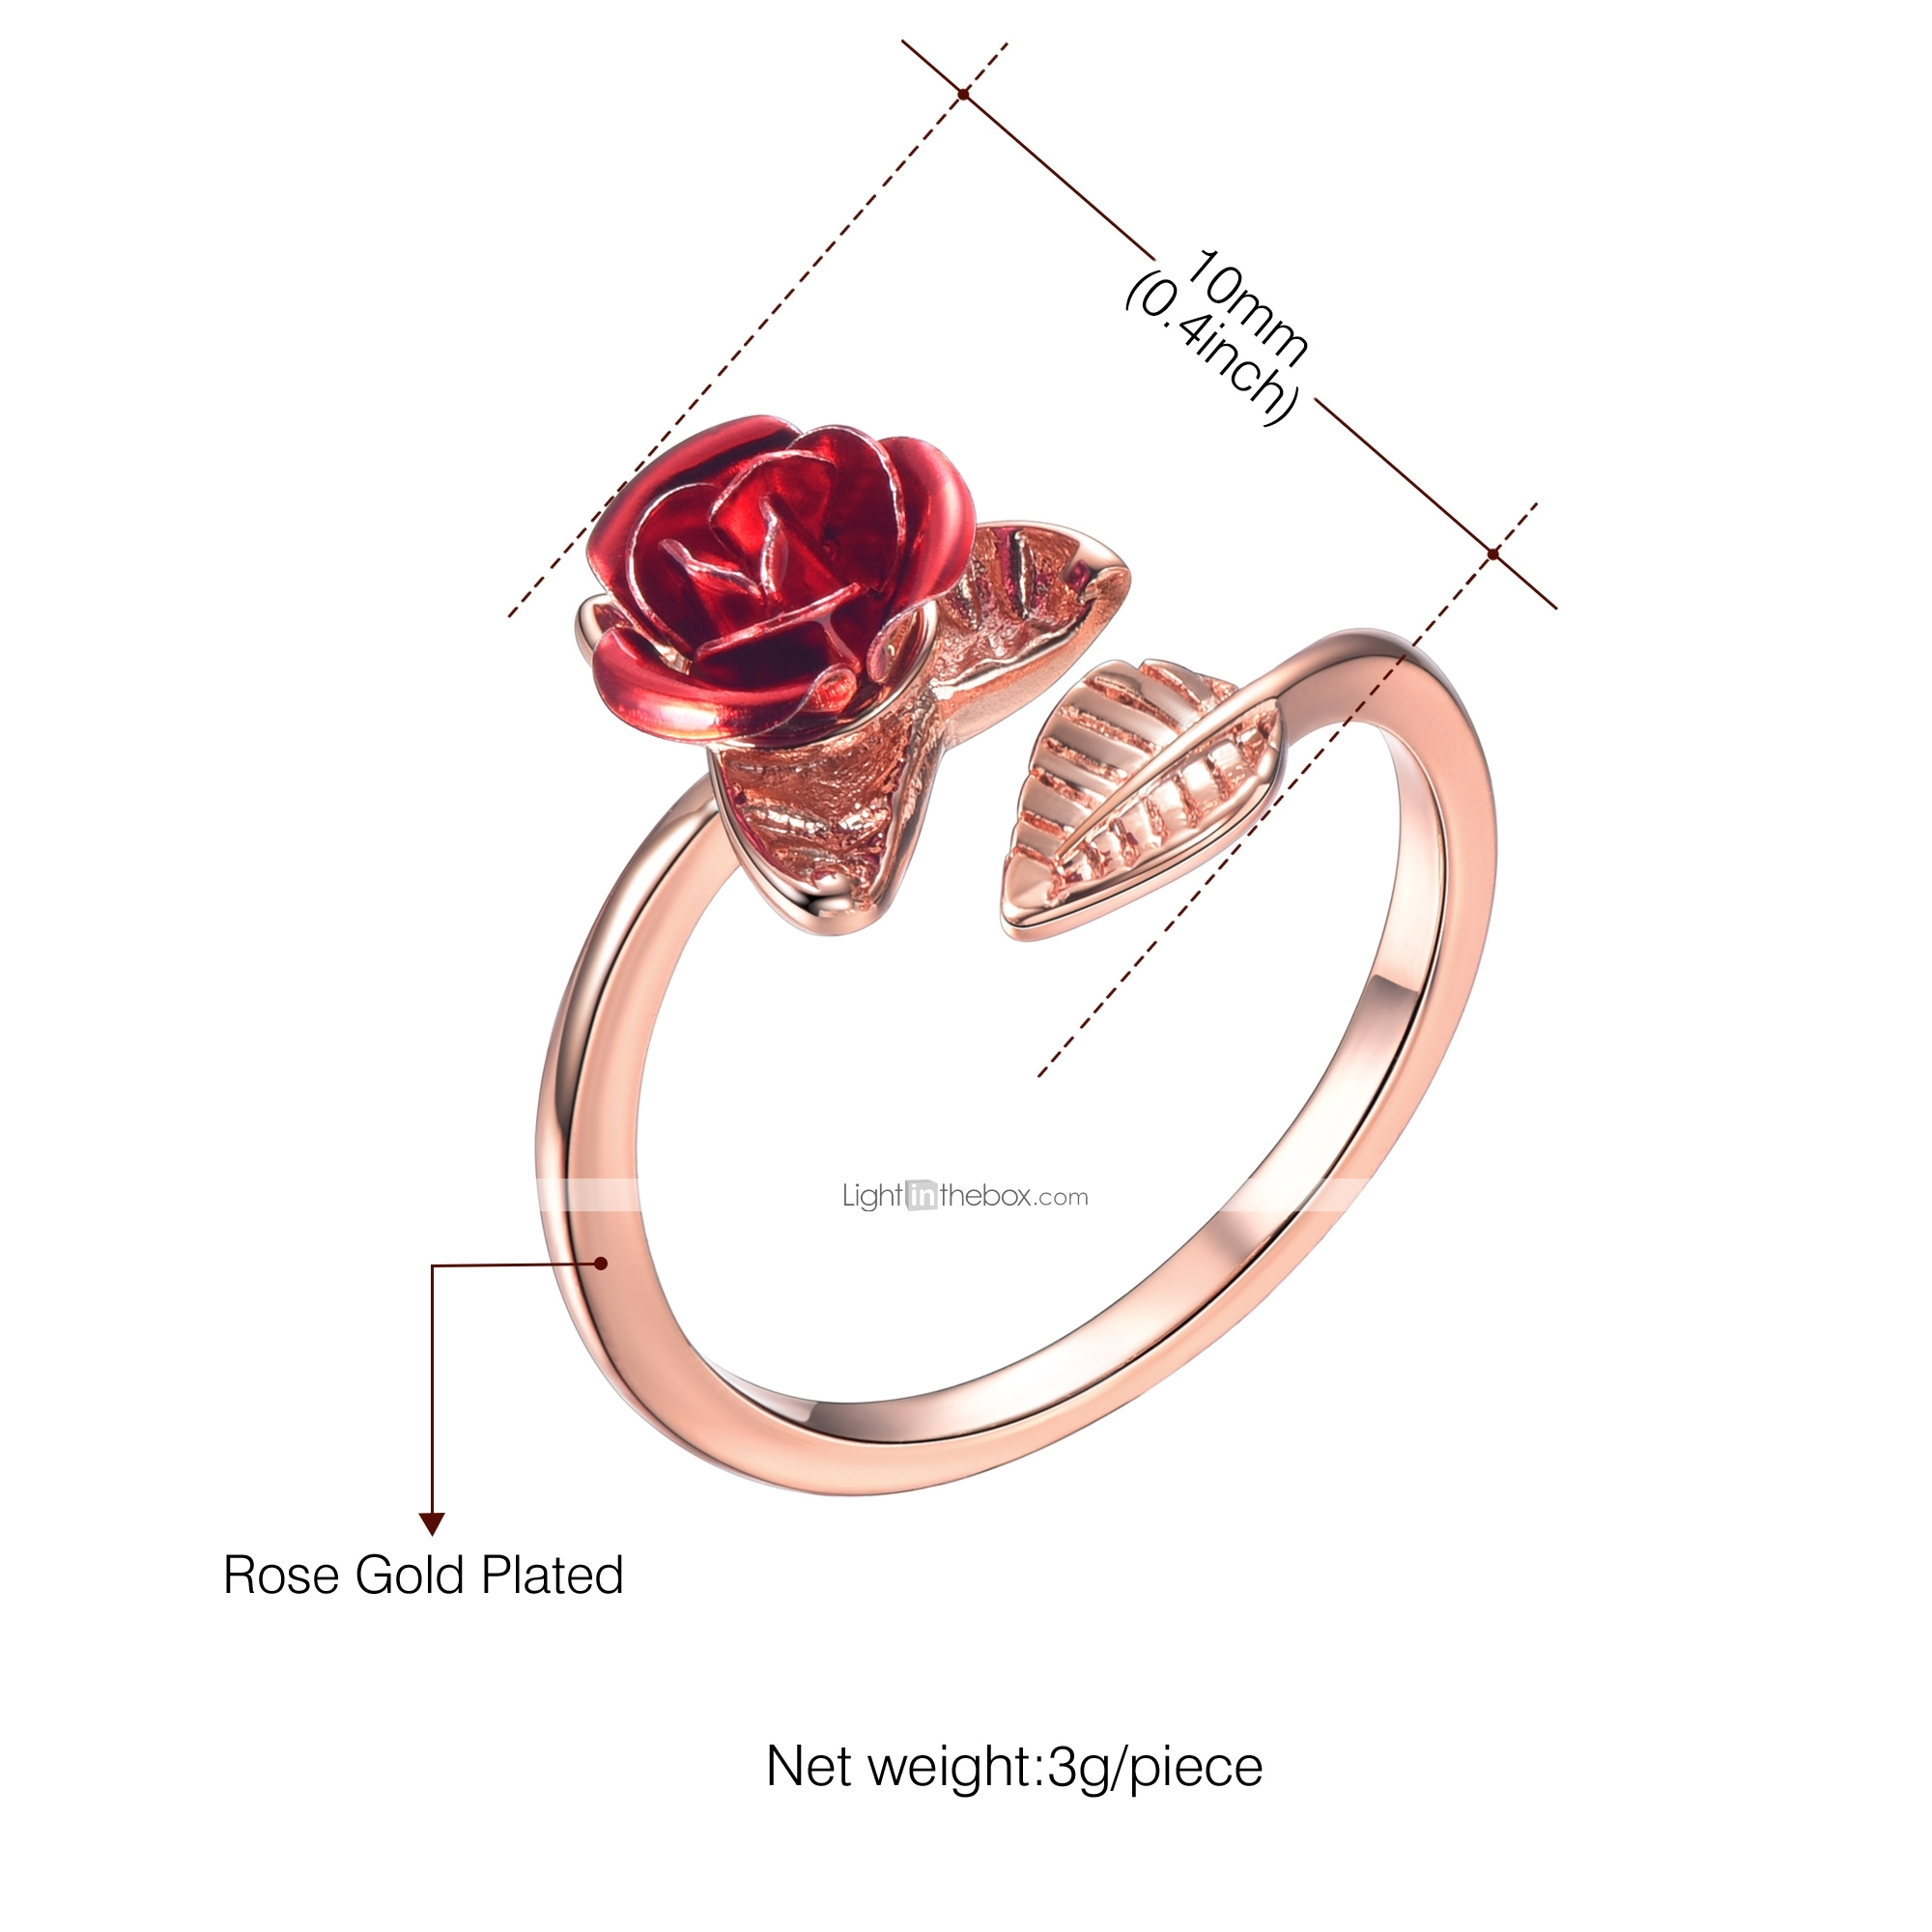 4f7bed6831fe3c Women's Sculpture Open Ring thumb ring Copper Flower Ladies Romantic  Fashion Ring Jewelry Gold / Silver / Rose Gold For Gift Daily Adjustable  #06935869